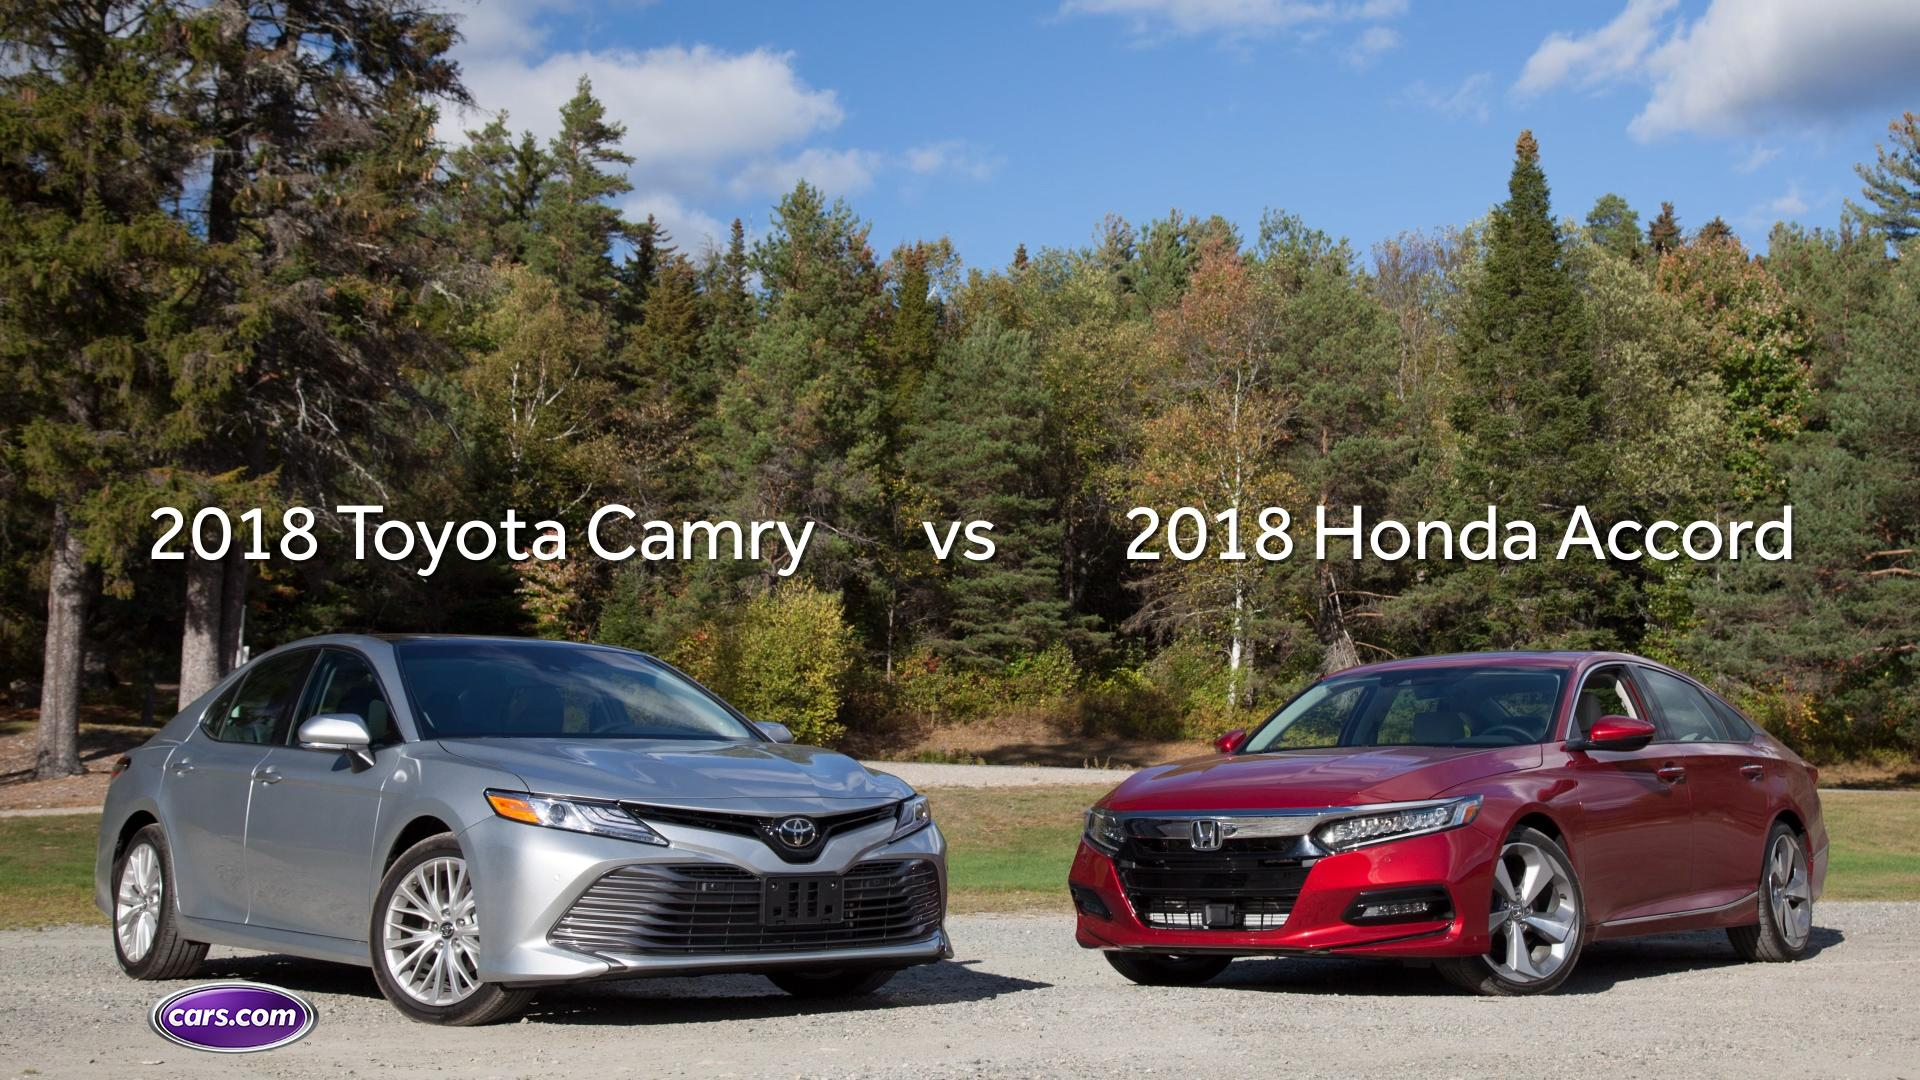 2018 Toyota Camry Vs. 2018 Honda Accord: Video